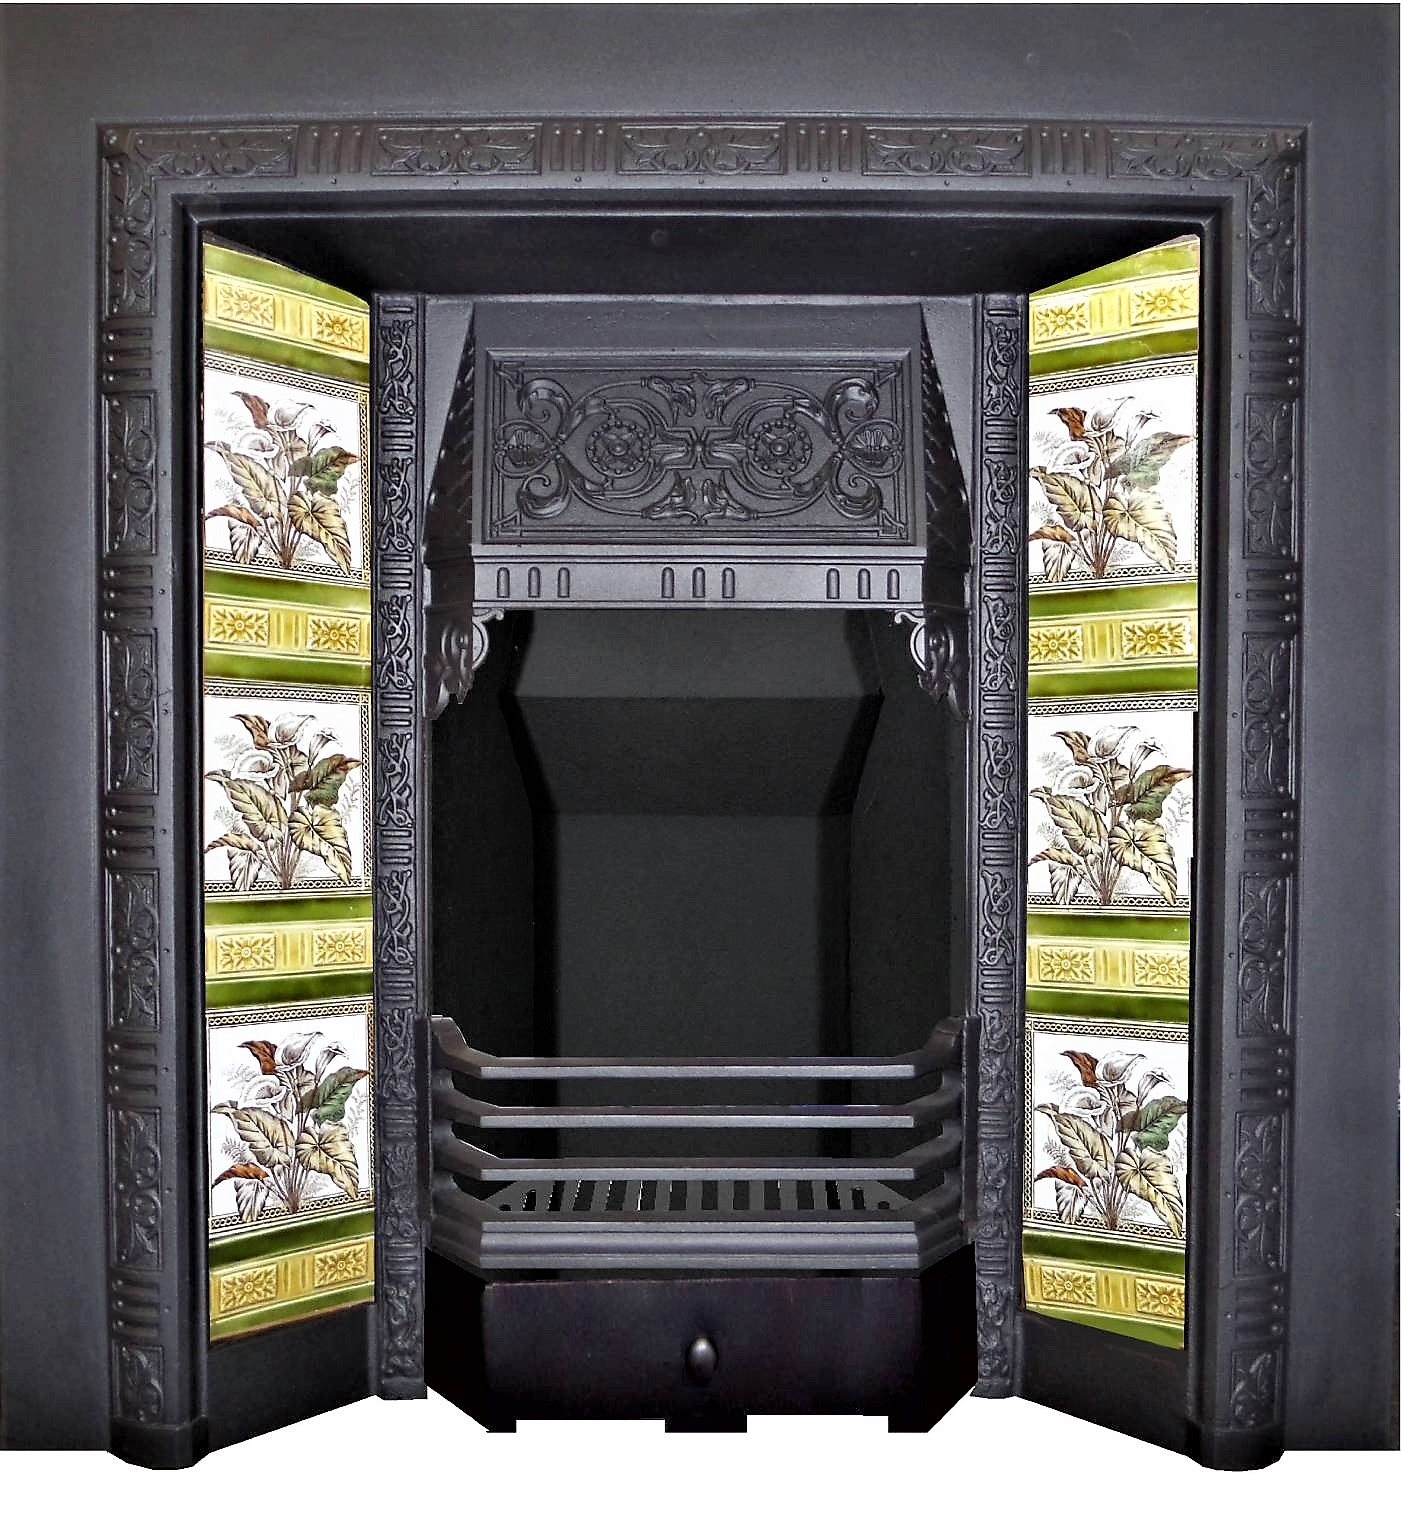 Buy Online Antique Victorian Circa 1880 Tiled Fireplace